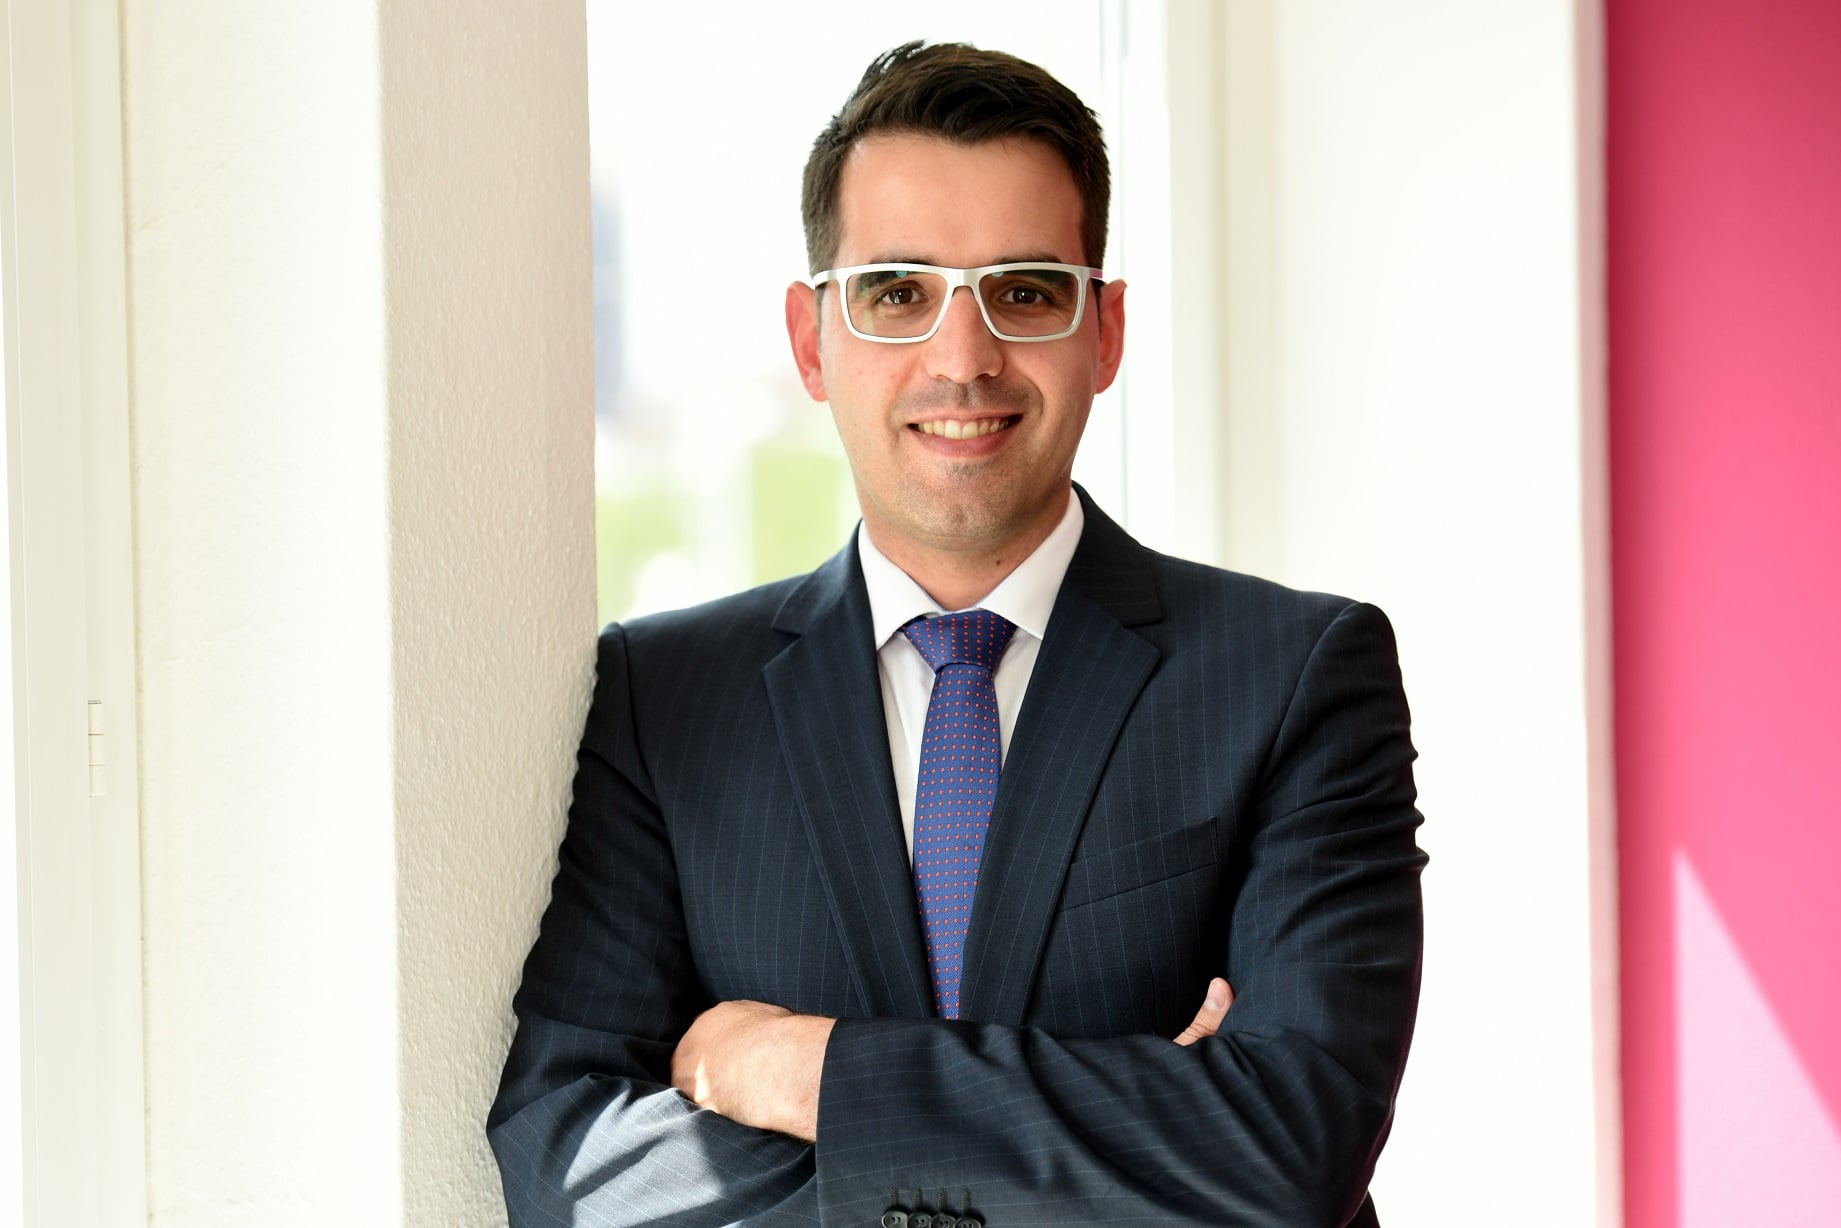 Interview with Reto Sidler – Head of Communications and Marketing at Greater Zurich Area